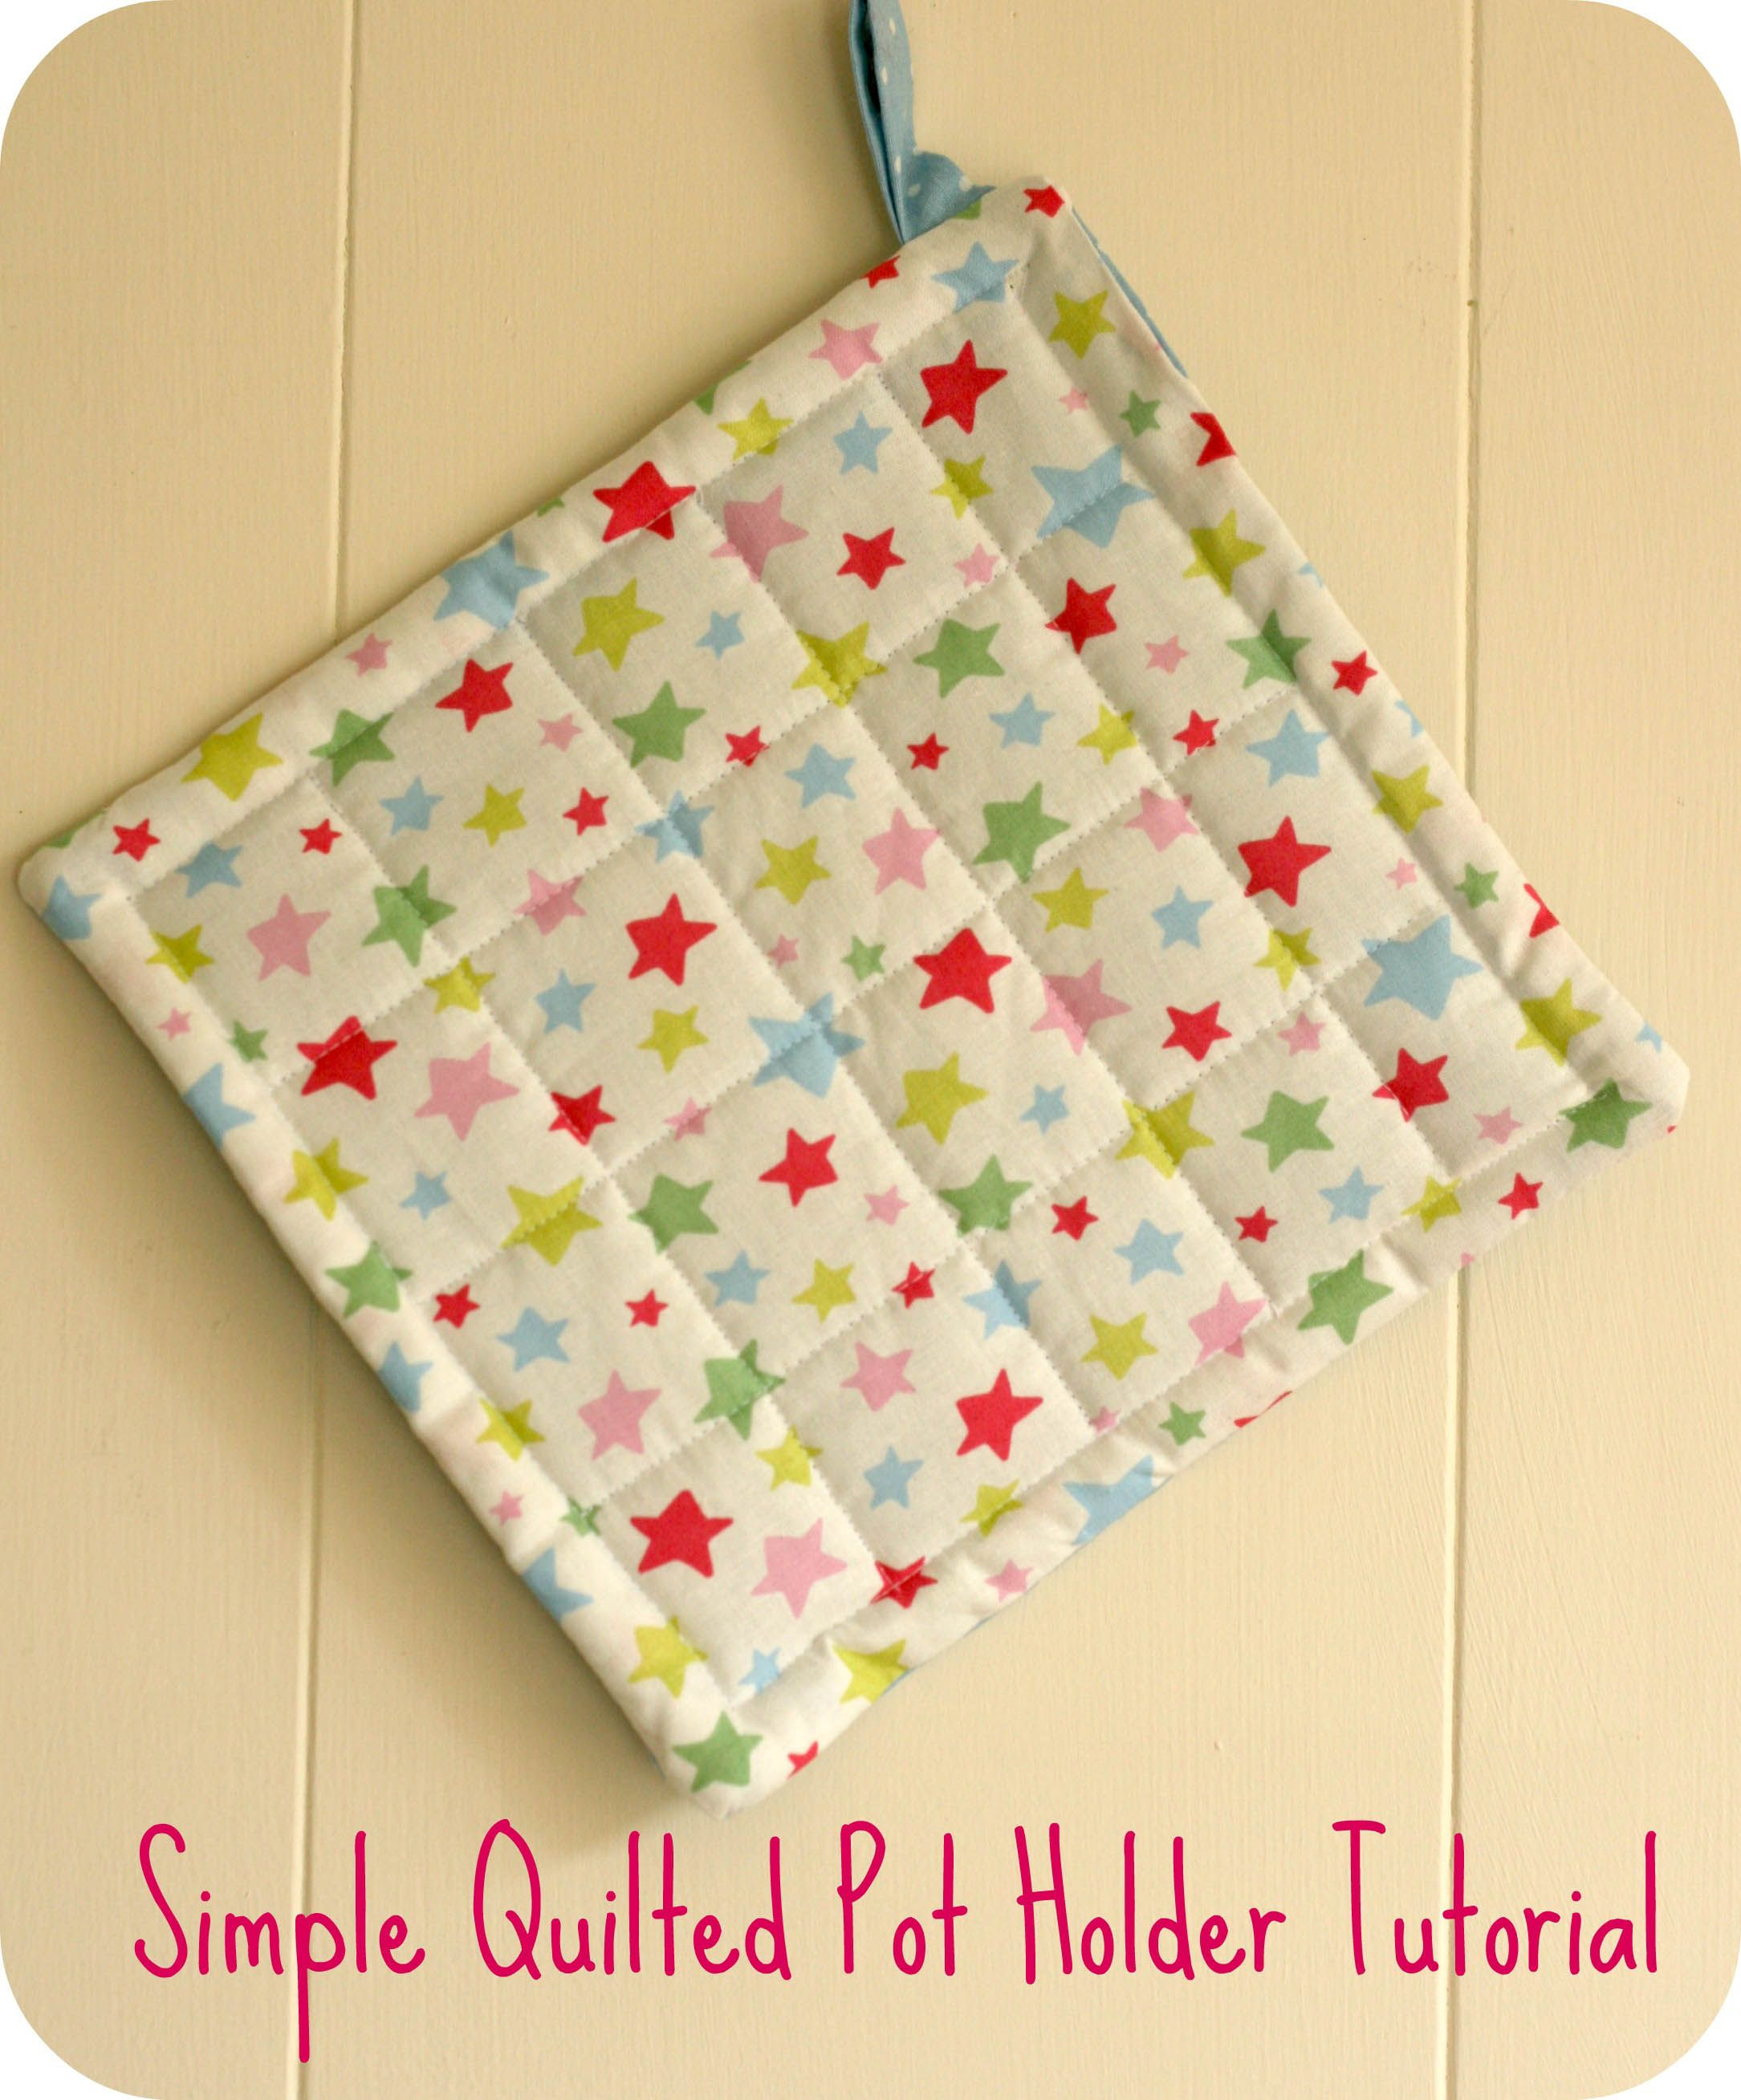 Simple Quilted Pot Holder Tutorial Scrap Fabric Projects